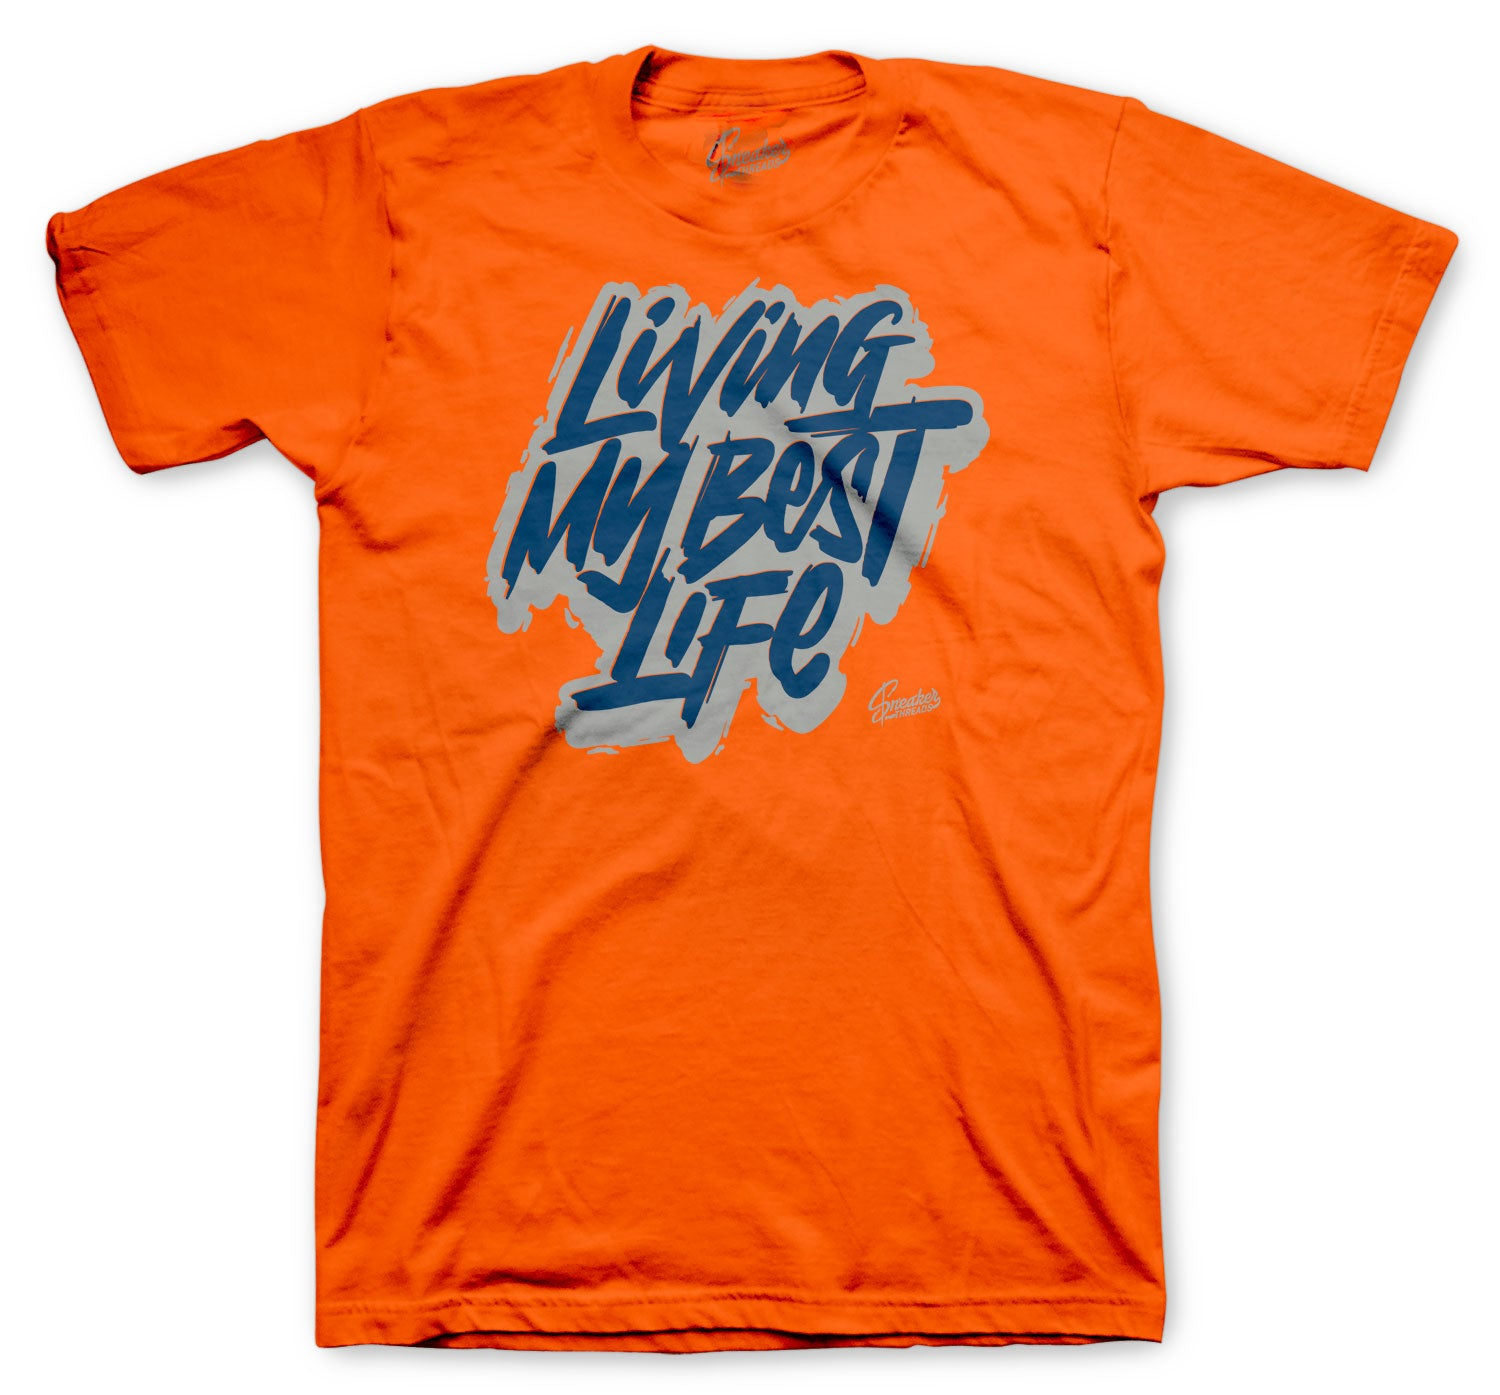 Tee collection matches the foamposite rugged orange sneaker collection